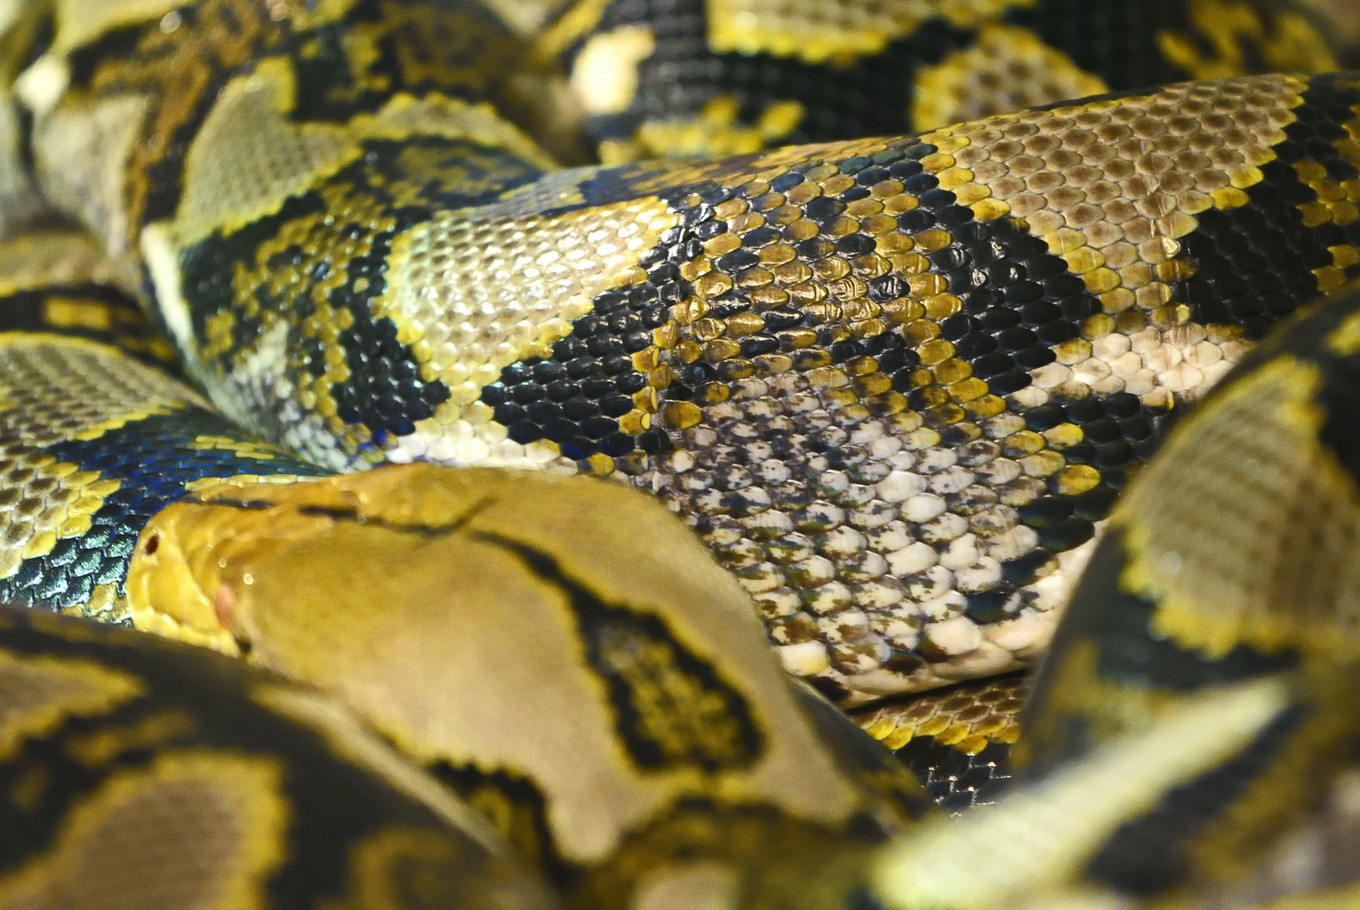 For farmers in Mamuju, python skins traded for pocket money